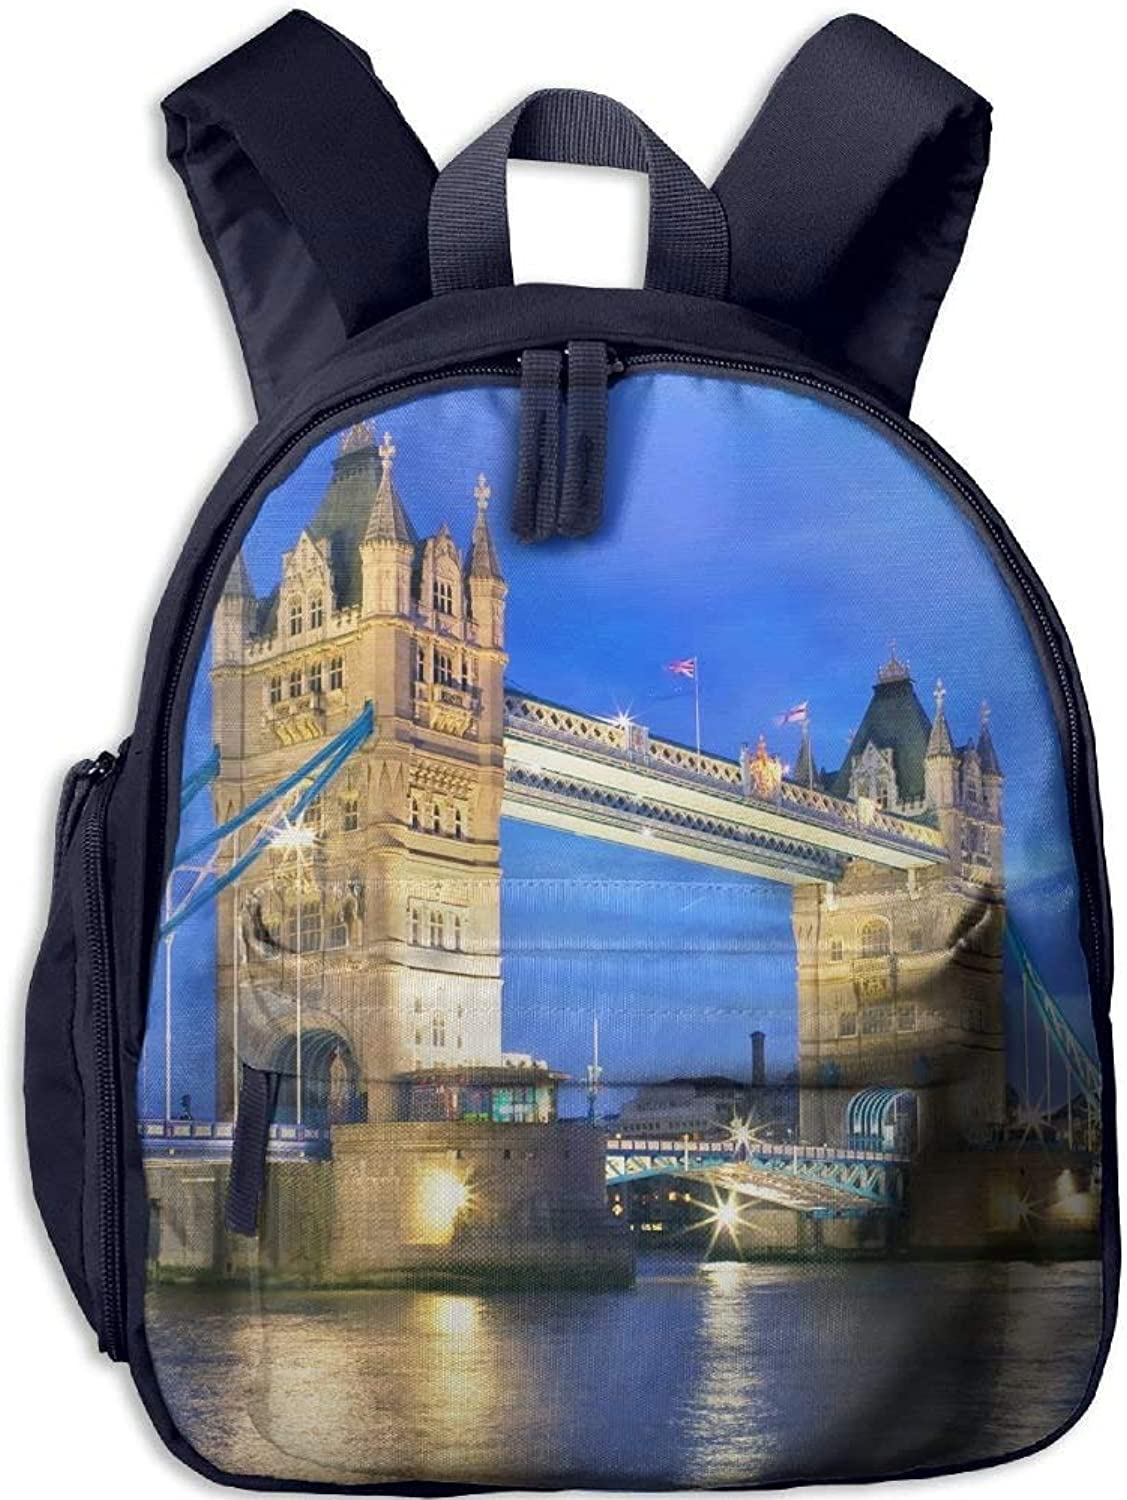 Backpack, School Backpack for Boys Girls Cute Fashion Mini Toddler Canvas Backpack, London Bridge B07LFZ3K1Y  Üppiges Design